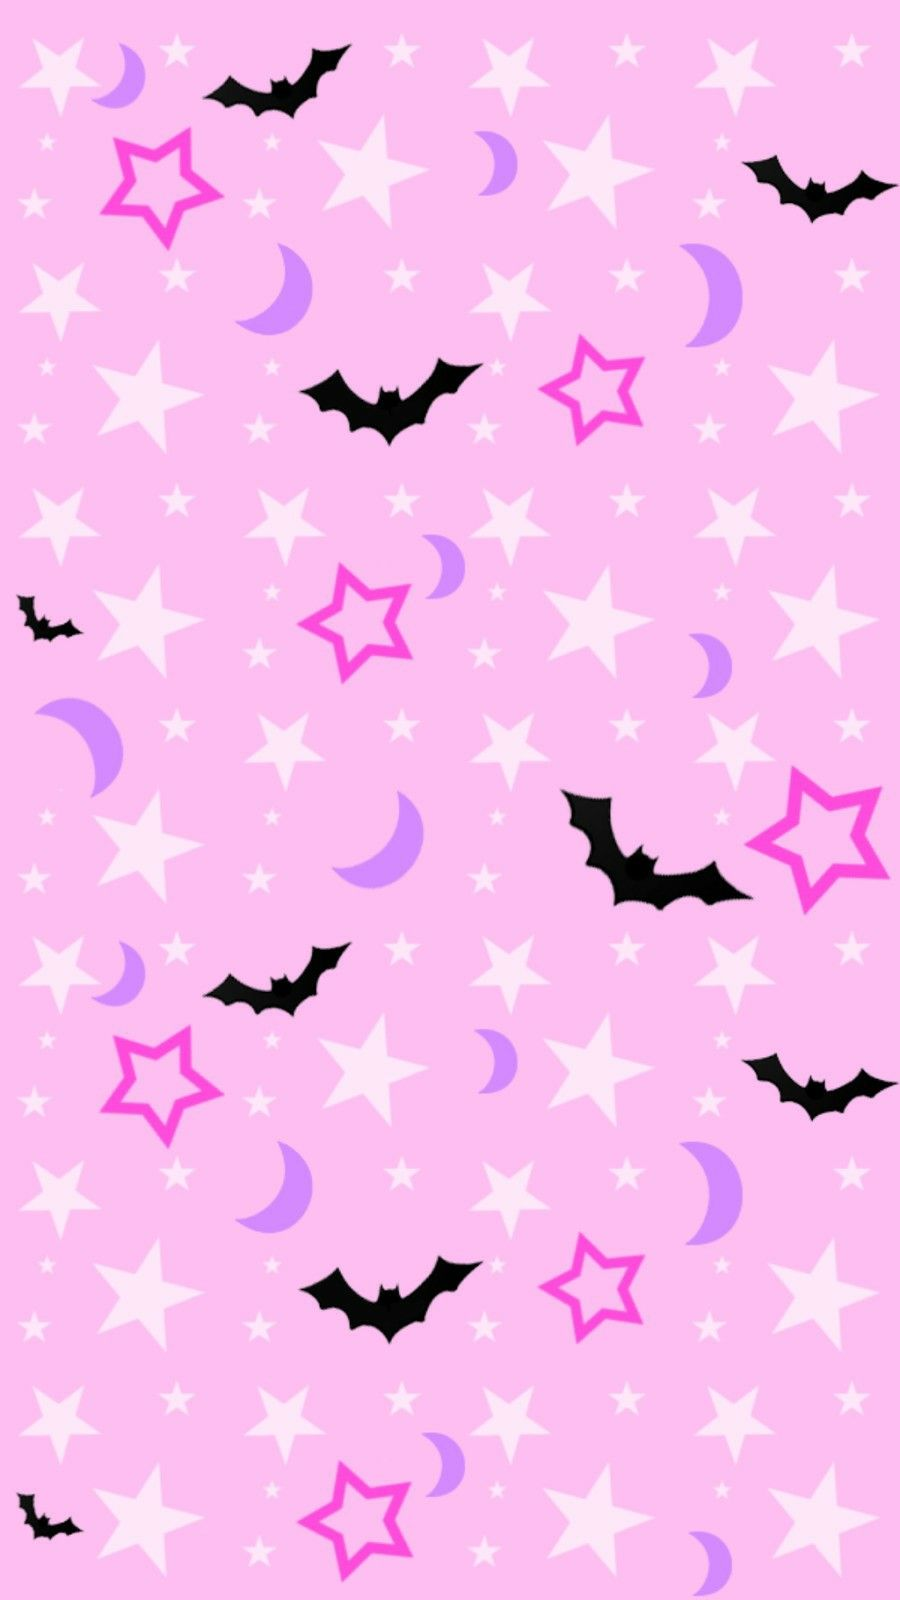 Luvnote2 Halloween Wallpaper Pastel Goth Background Halloween Backgrounds